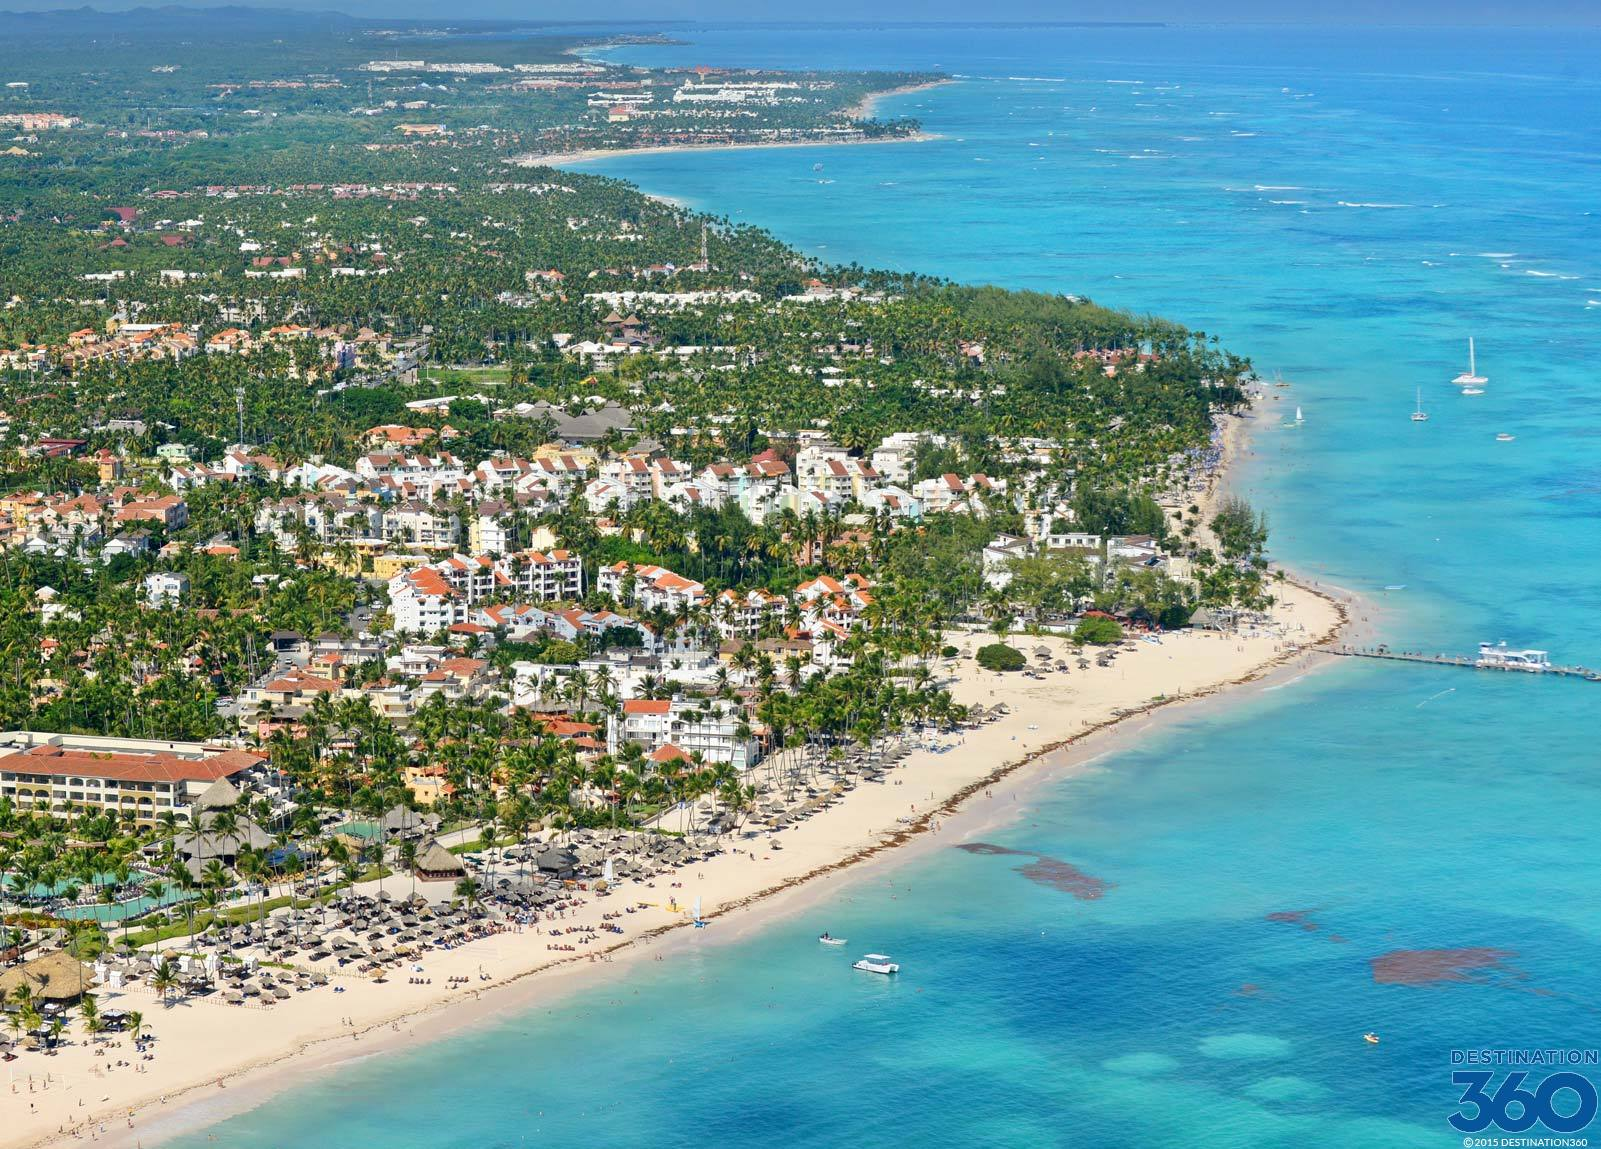 Luxury Hotels in Punta Cana